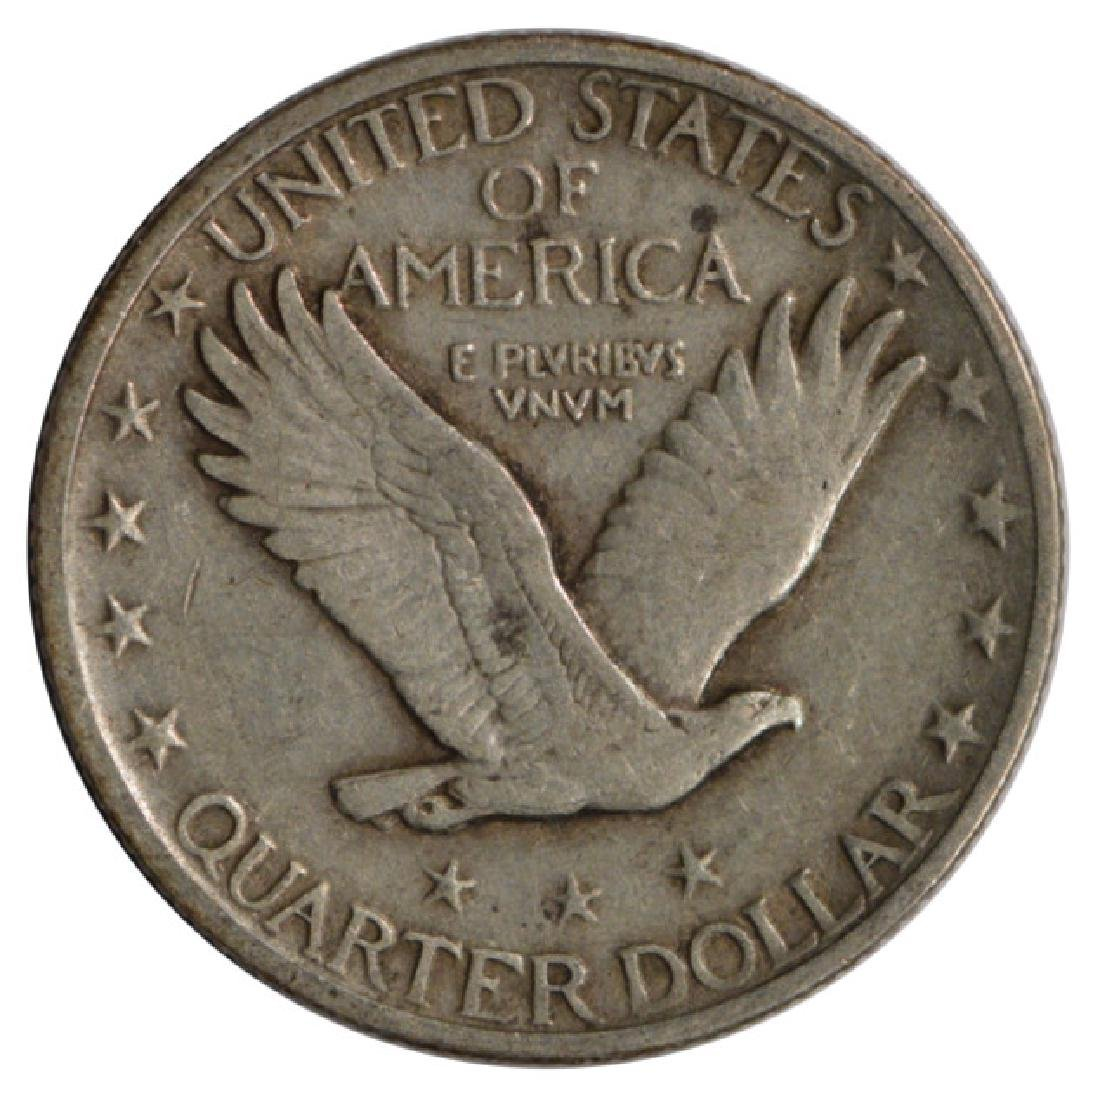 1919 Standing Liberty Quarter Coin - 2